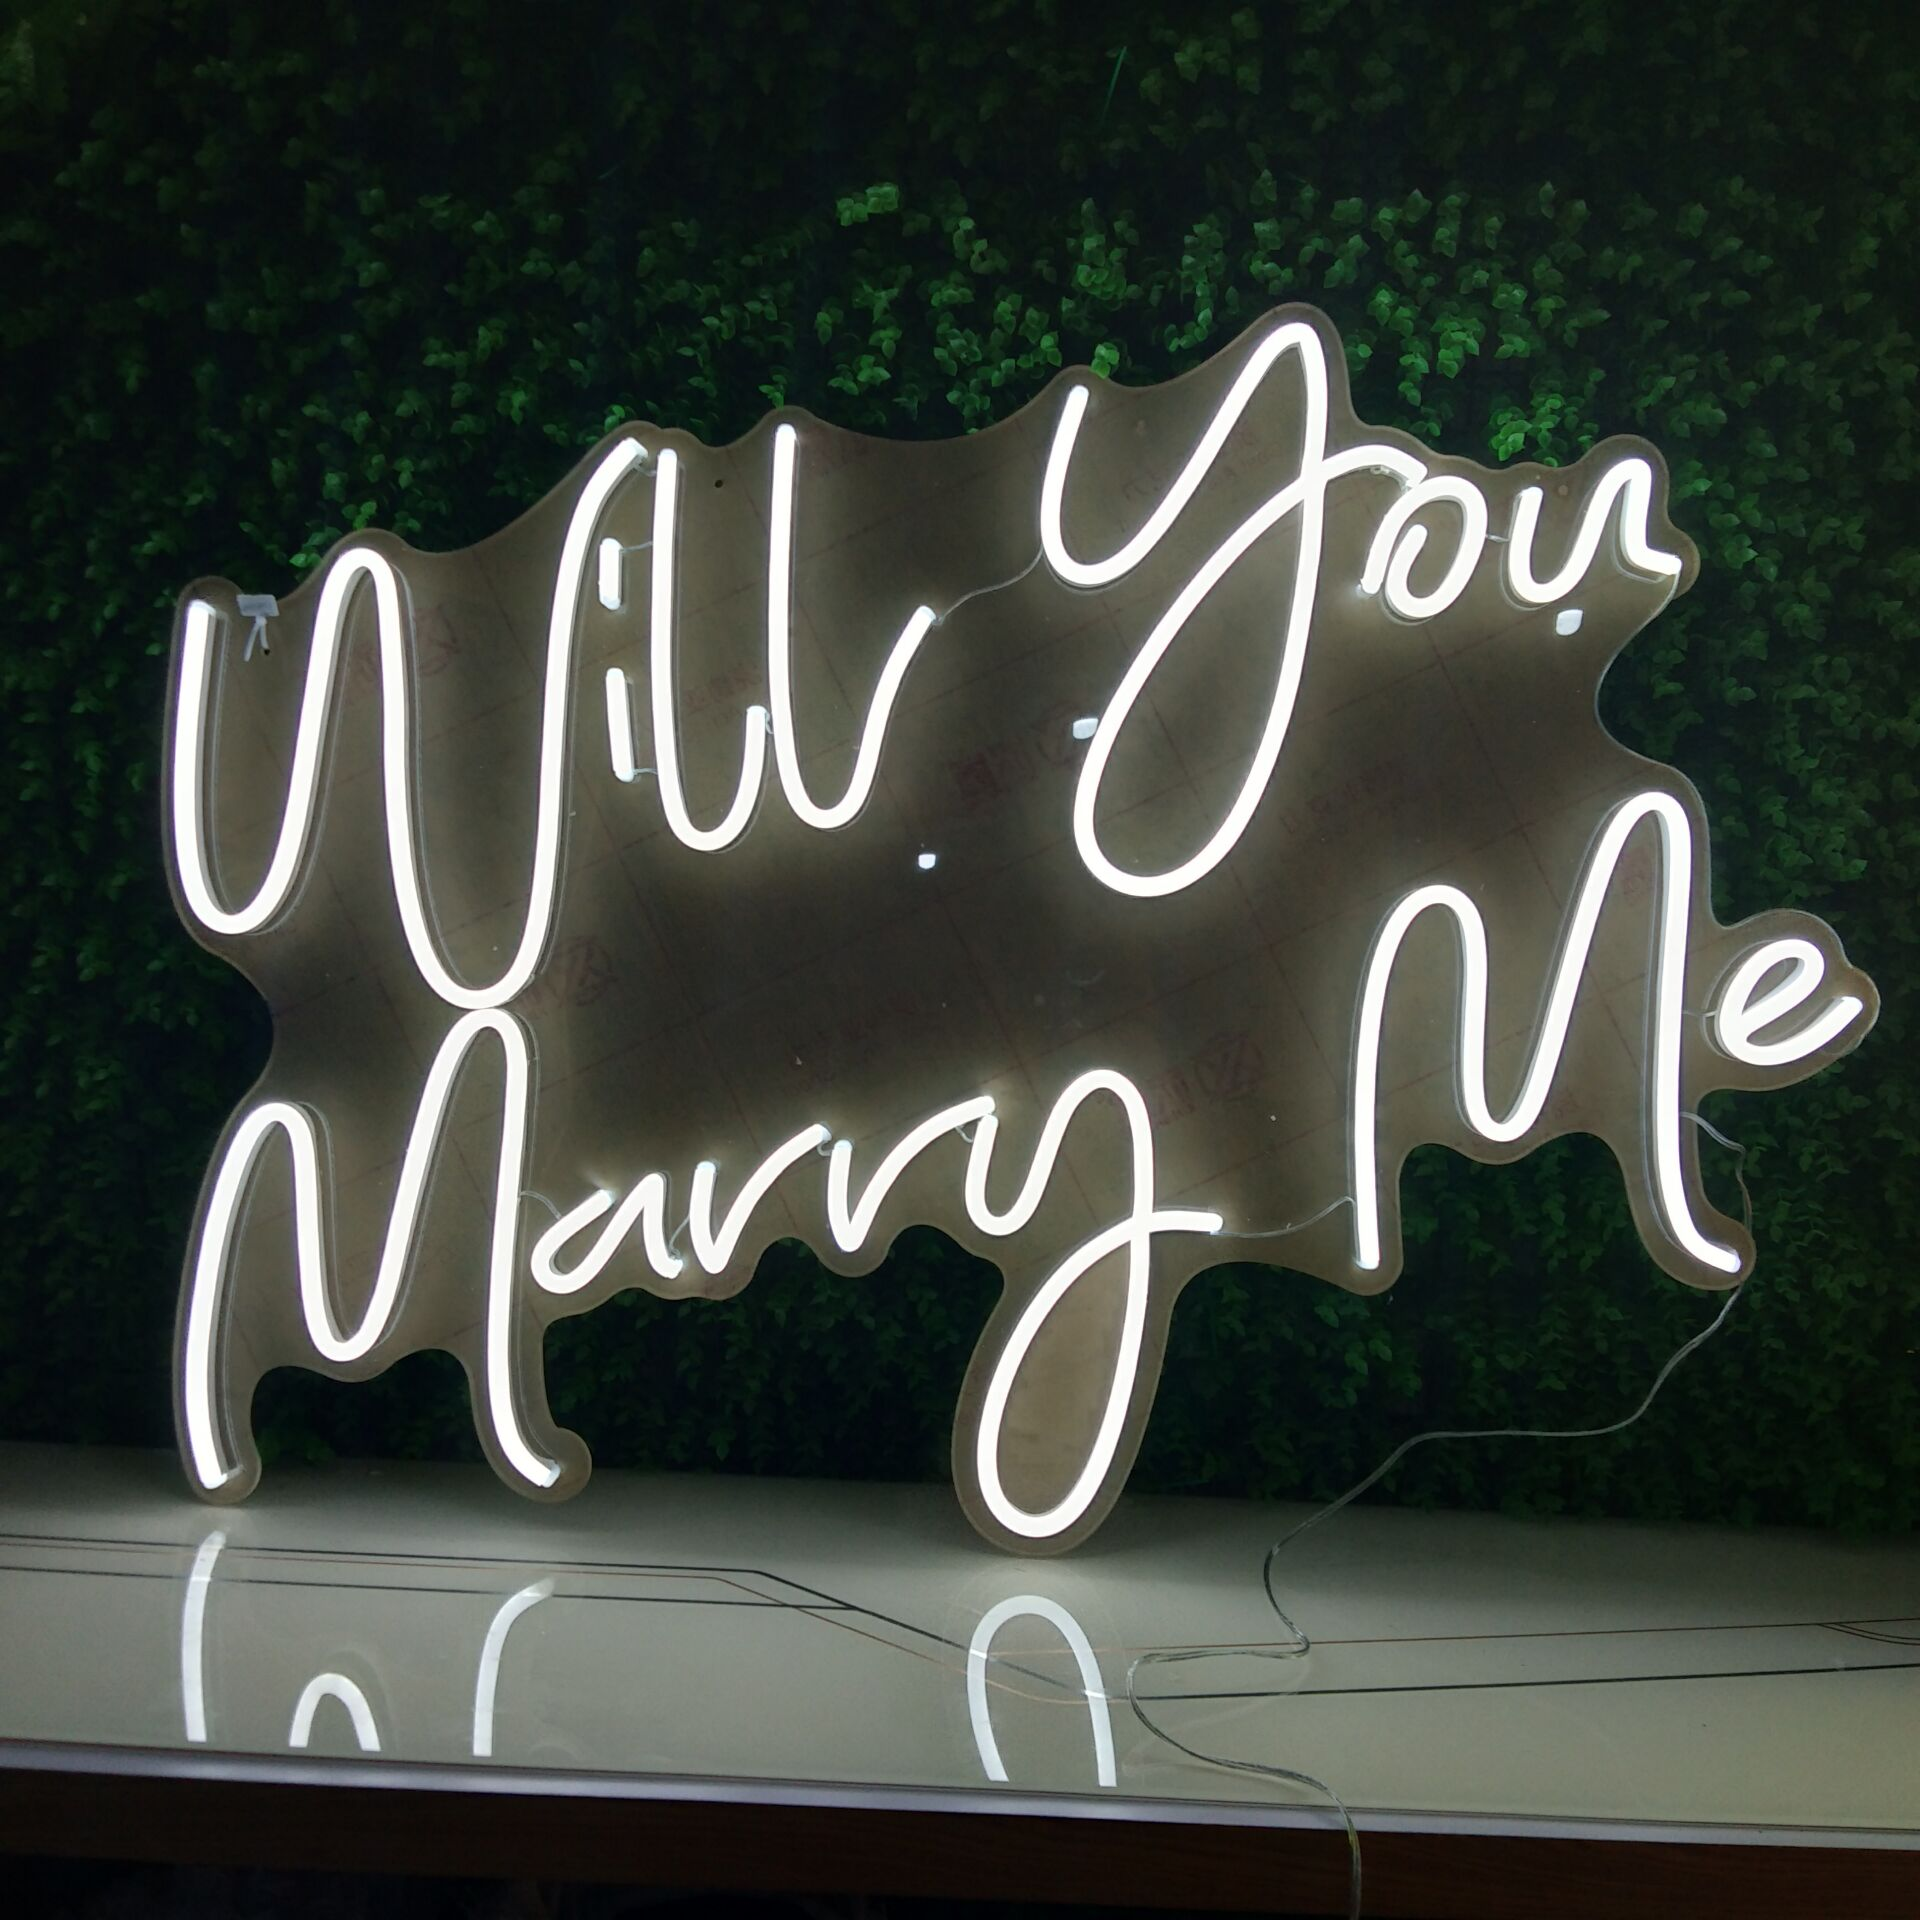 Will you marry me wedding birthday party Event decoration custom acrylic LED edge letter sign, 3D open LED neon sign letter